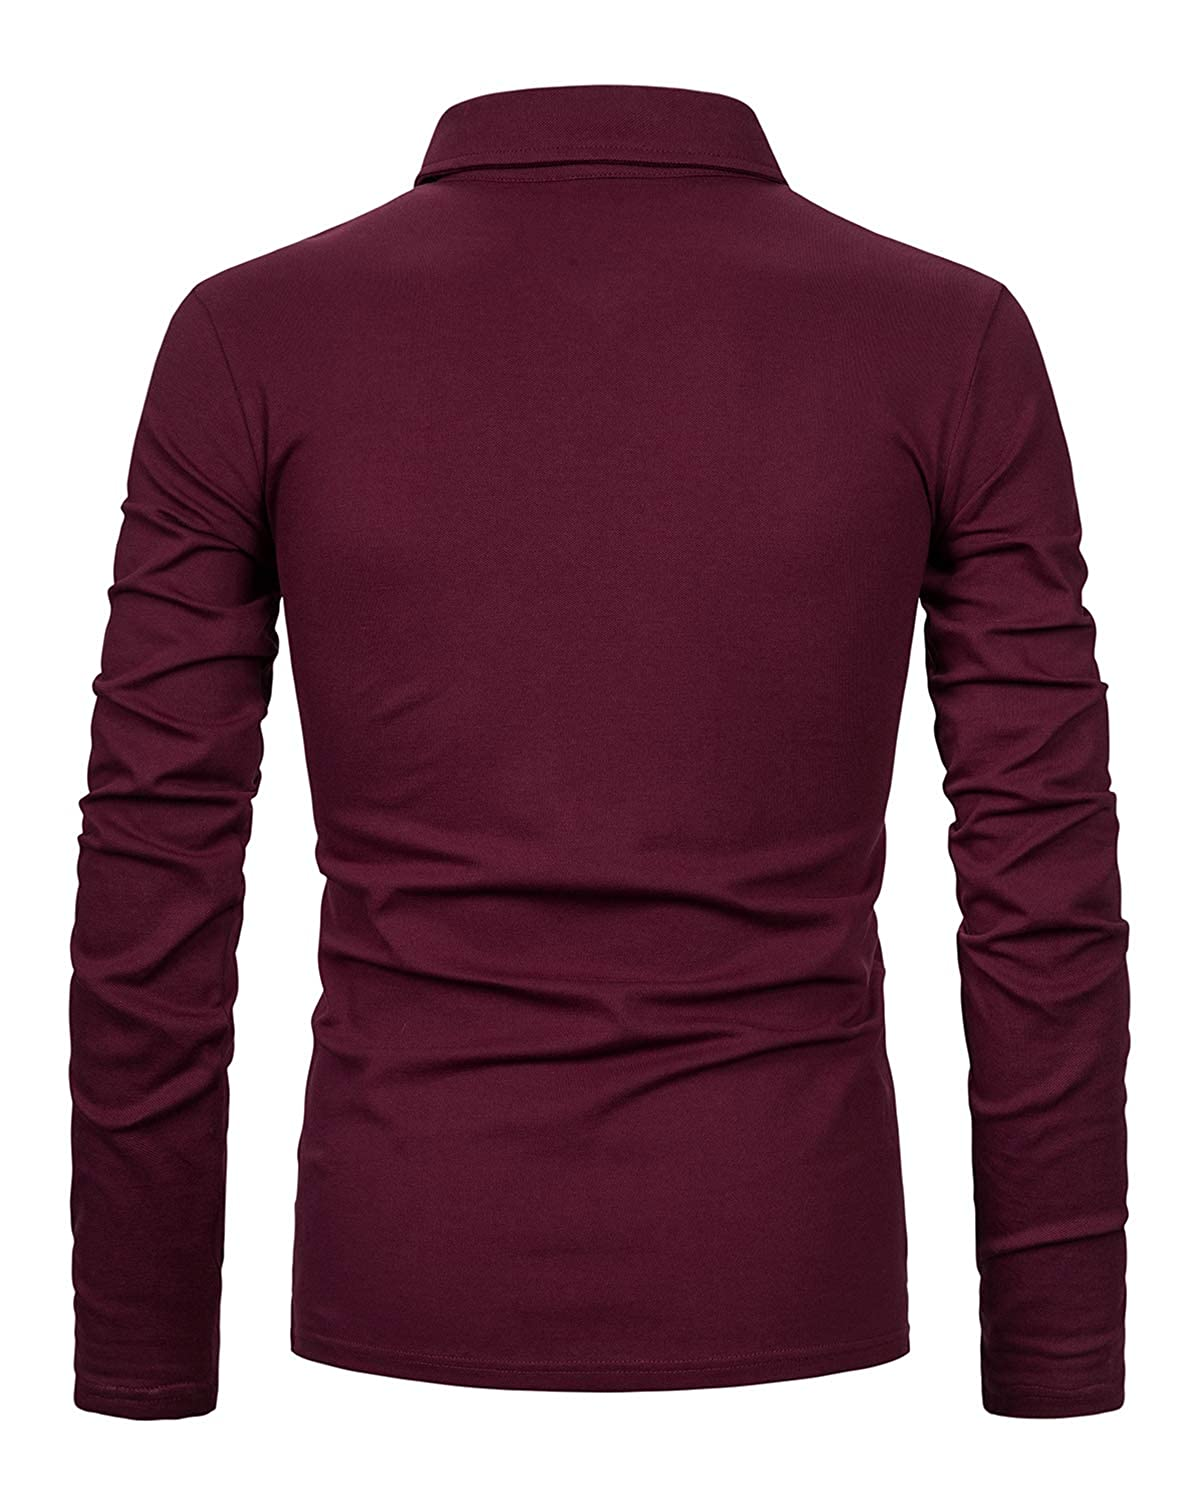 XXIE Mens Long Sleeve Polo Shirts with Fashion Plaid Collar Casual Tops